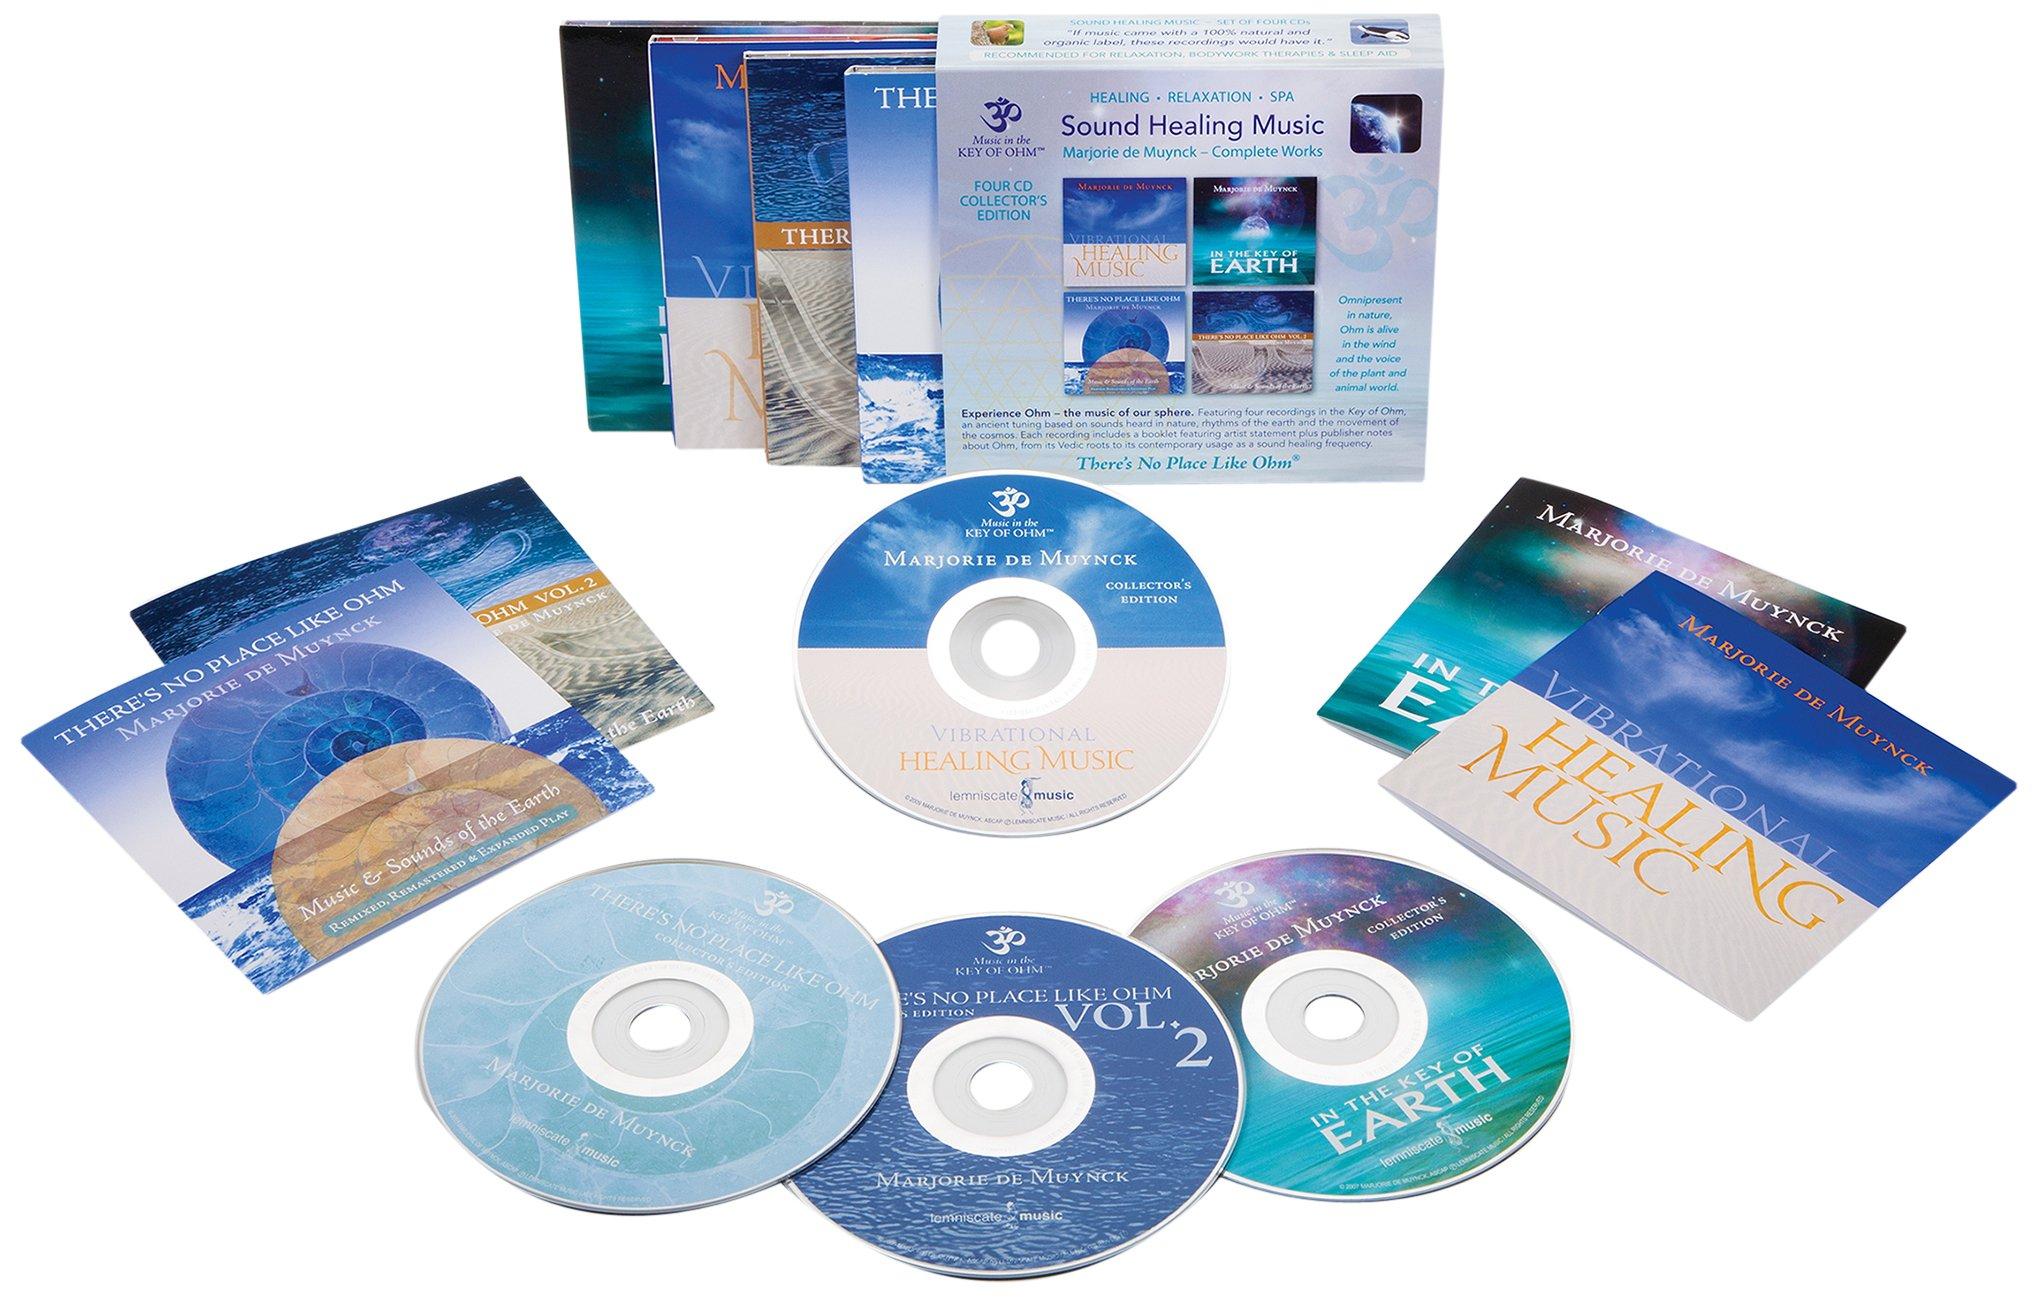 Sound Healing Music Collector's Edition